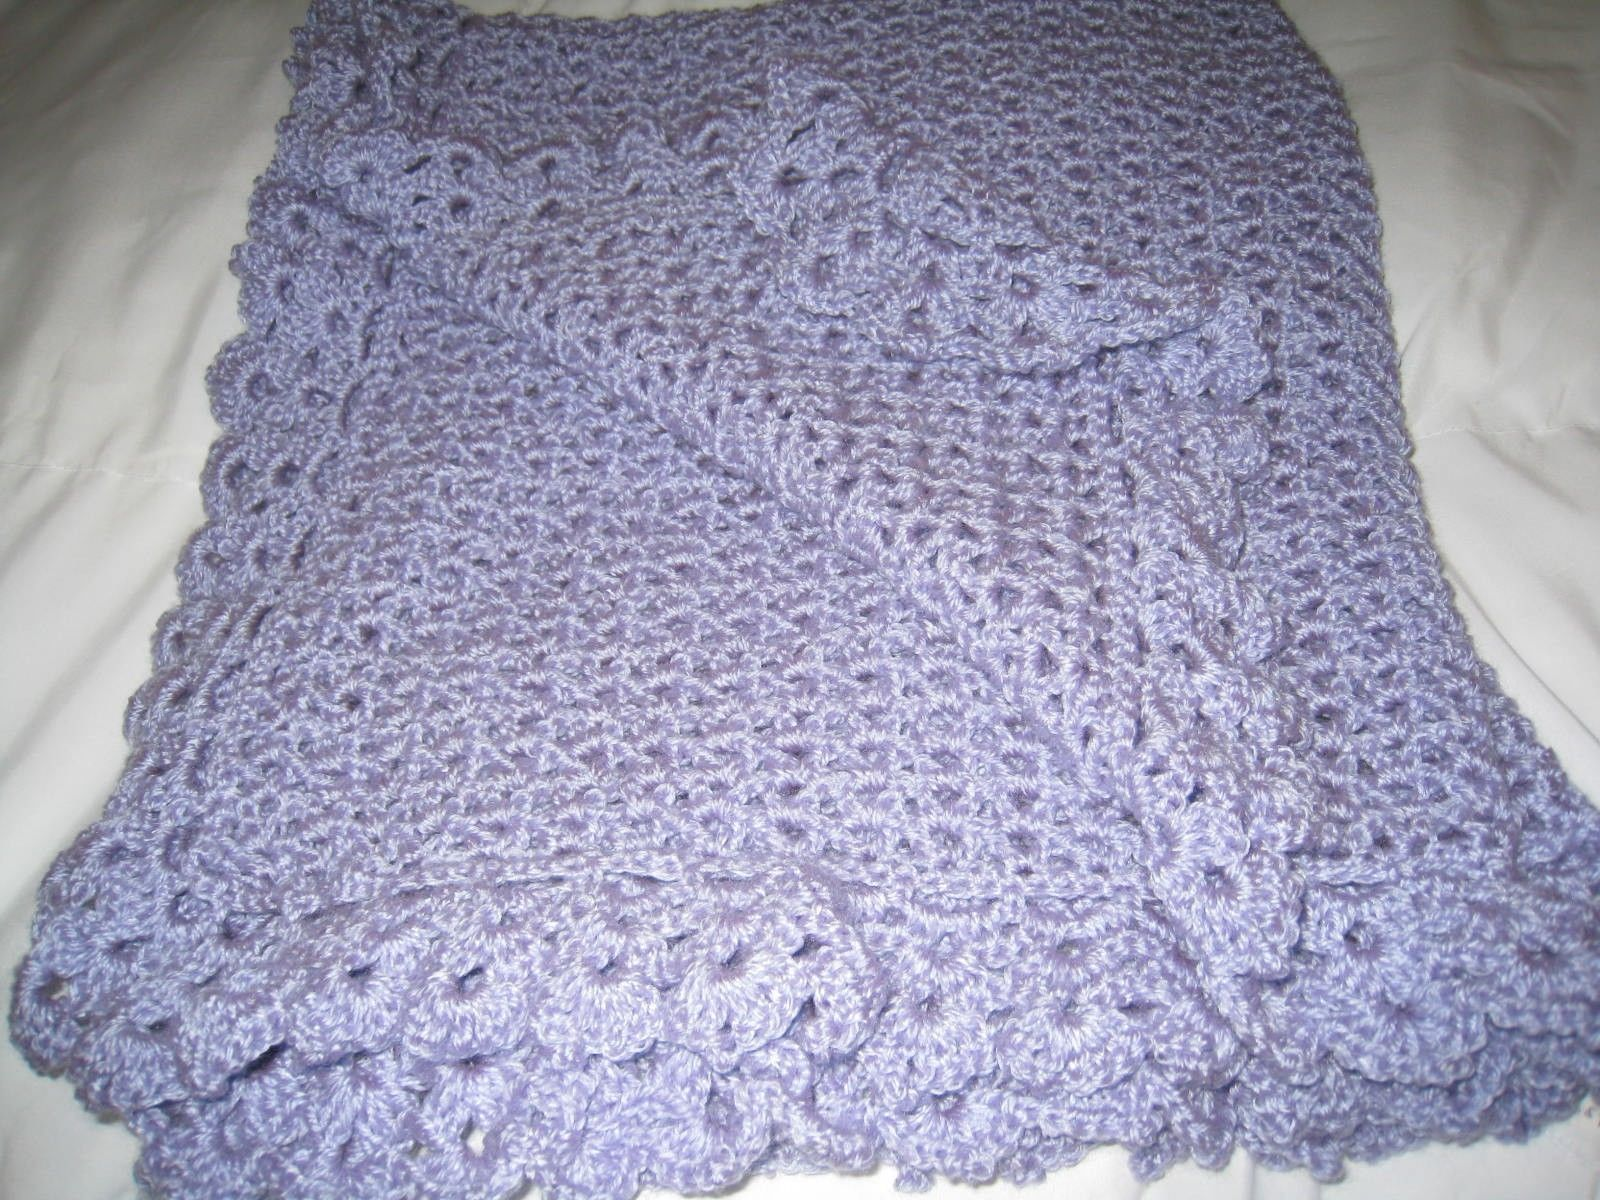 Lilac Lace Border Afghan~hand crocheted~Blanket Shawl Baby Throw Shower Gift picclick.com